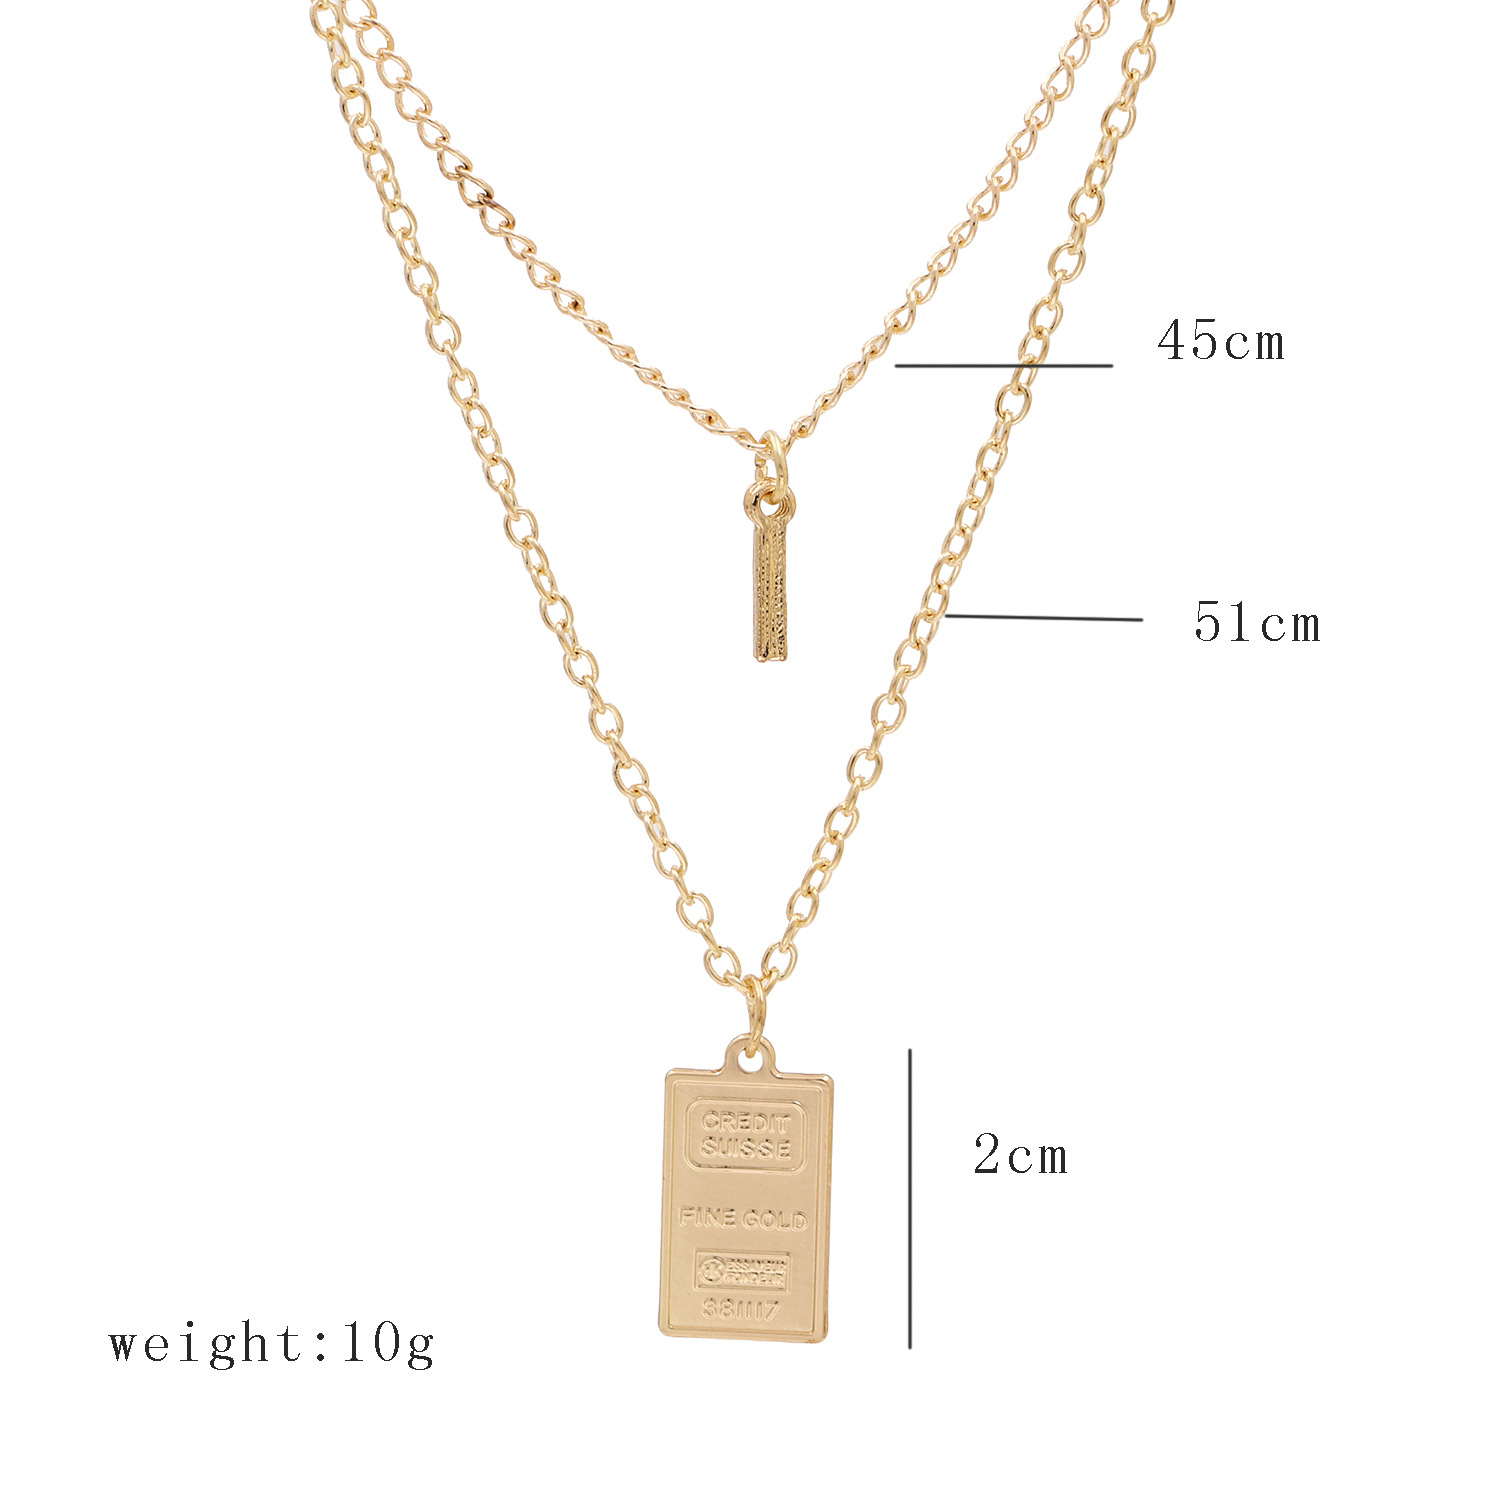 popular personality metal square brand necklace explosive double-layer wear alloy necklace wholesale nihaojewelry NHUI221106